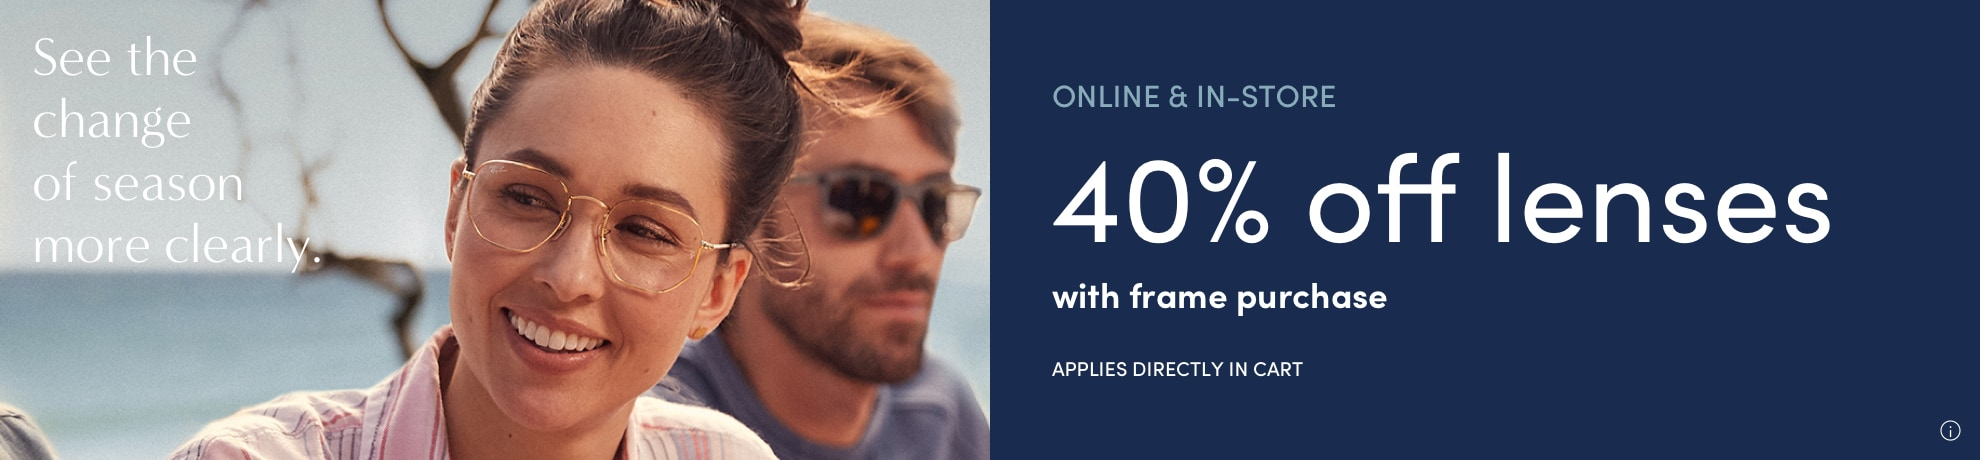 40% off lenses banner